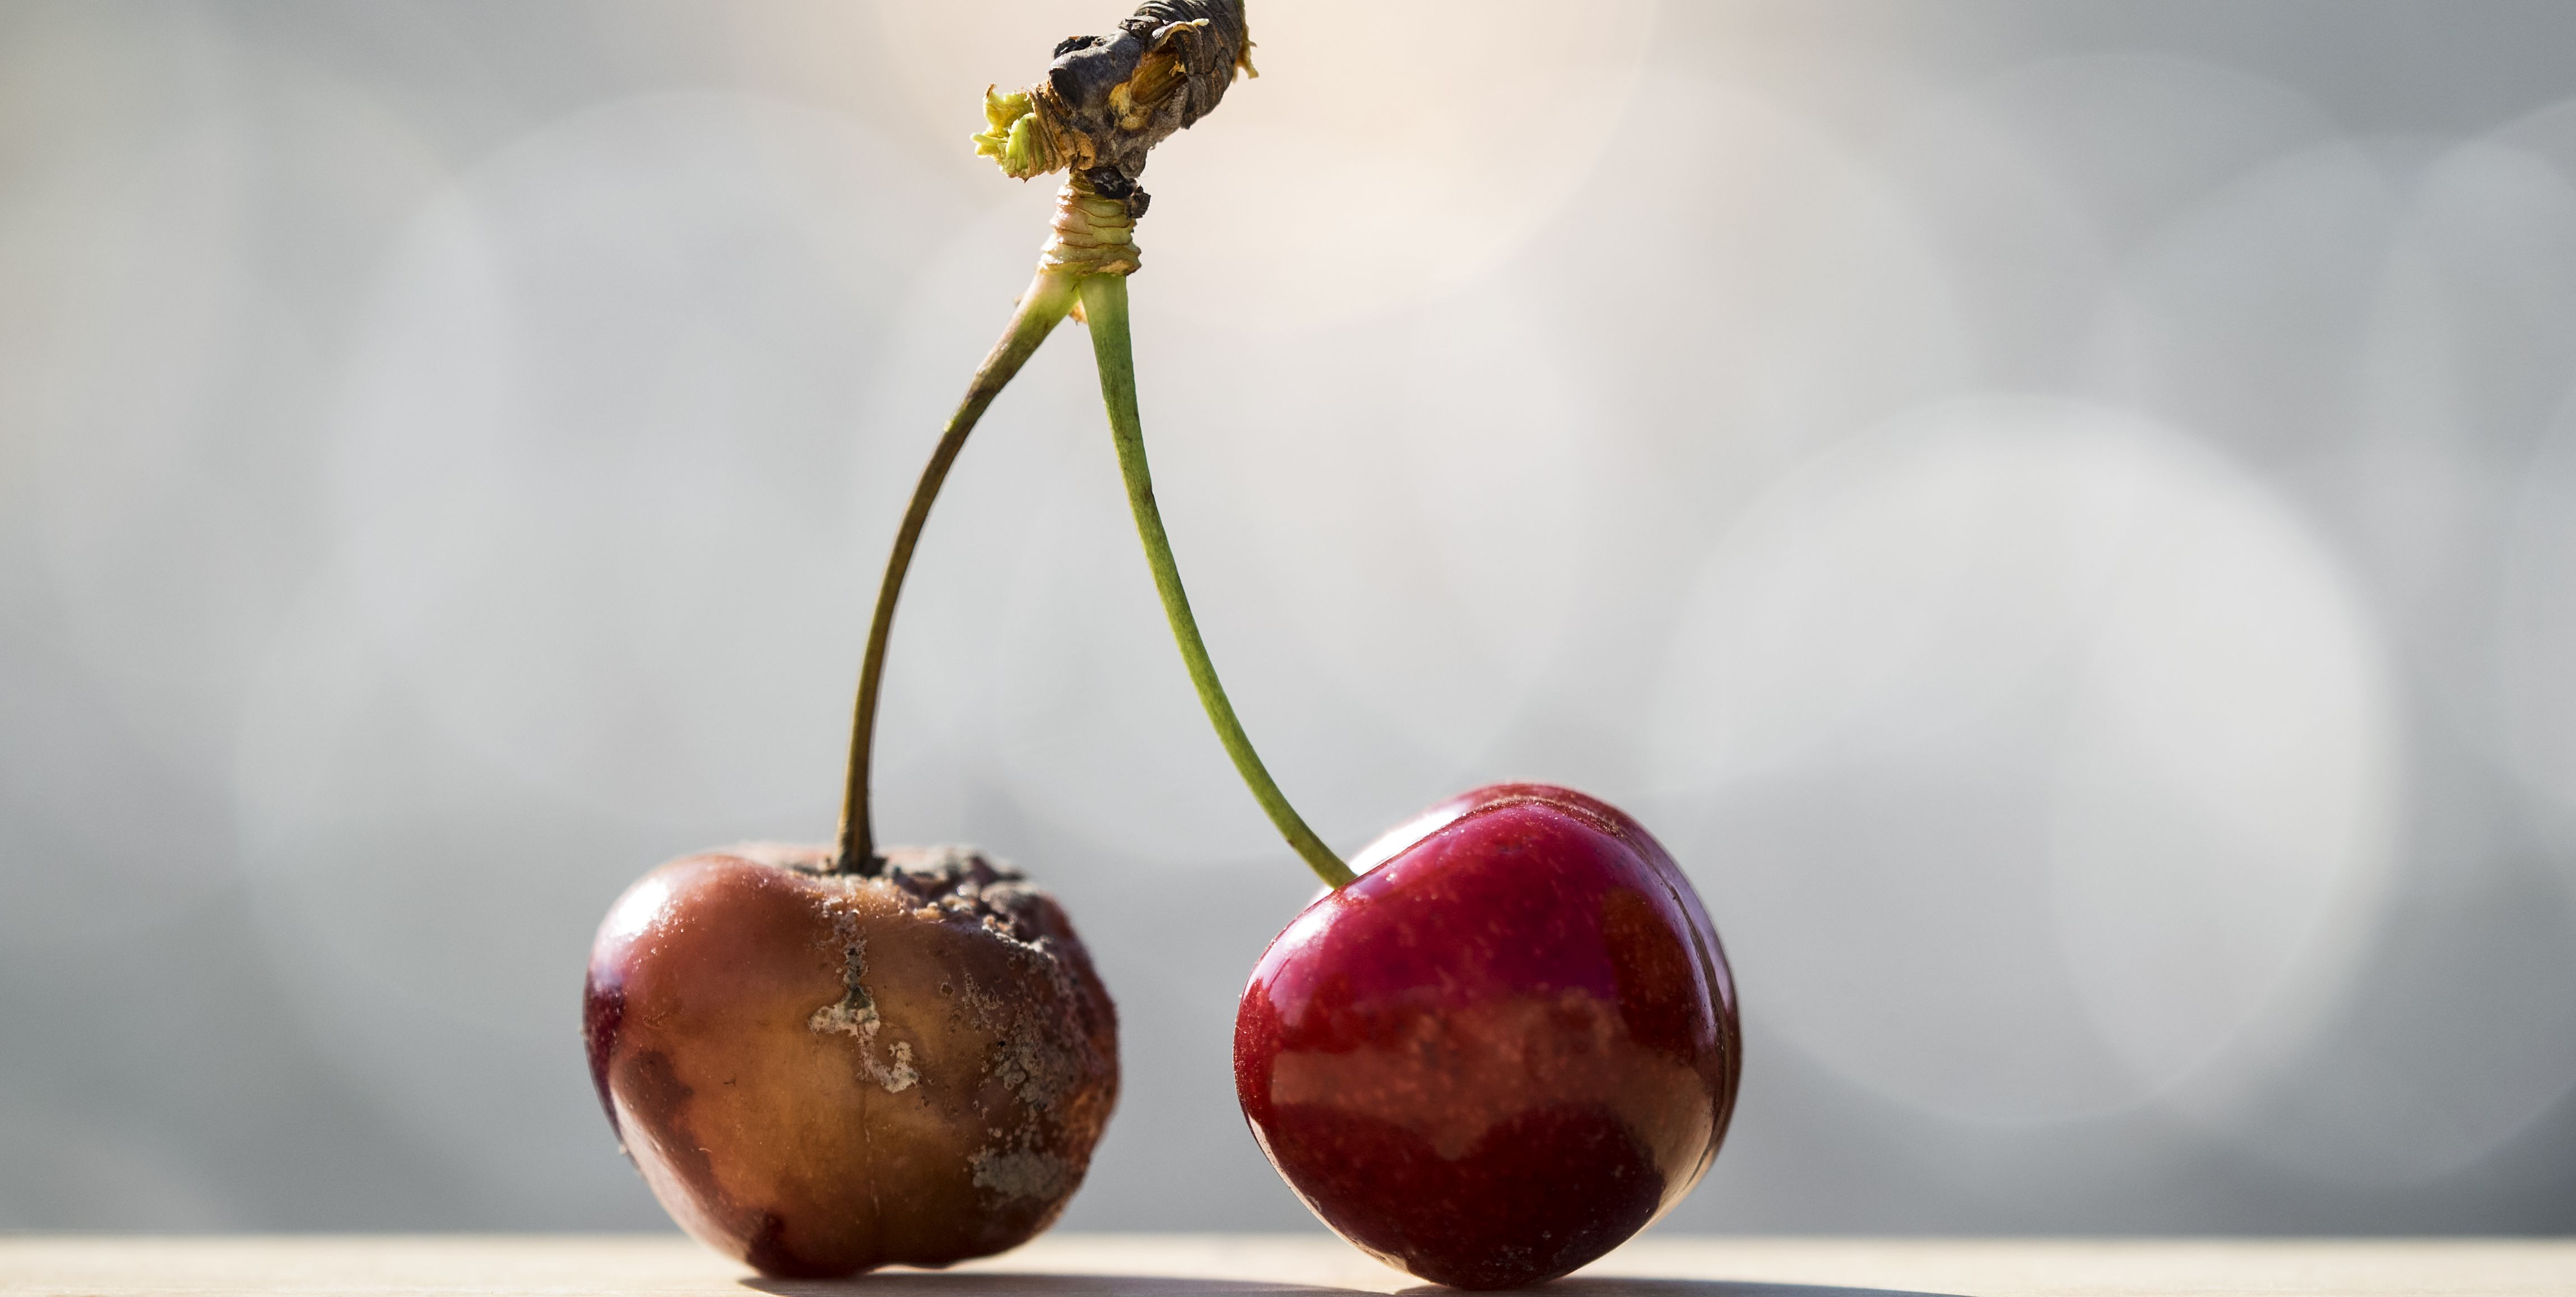 Contrast between two cherries, one matures with mildew and rotten and another fresh air and juicy